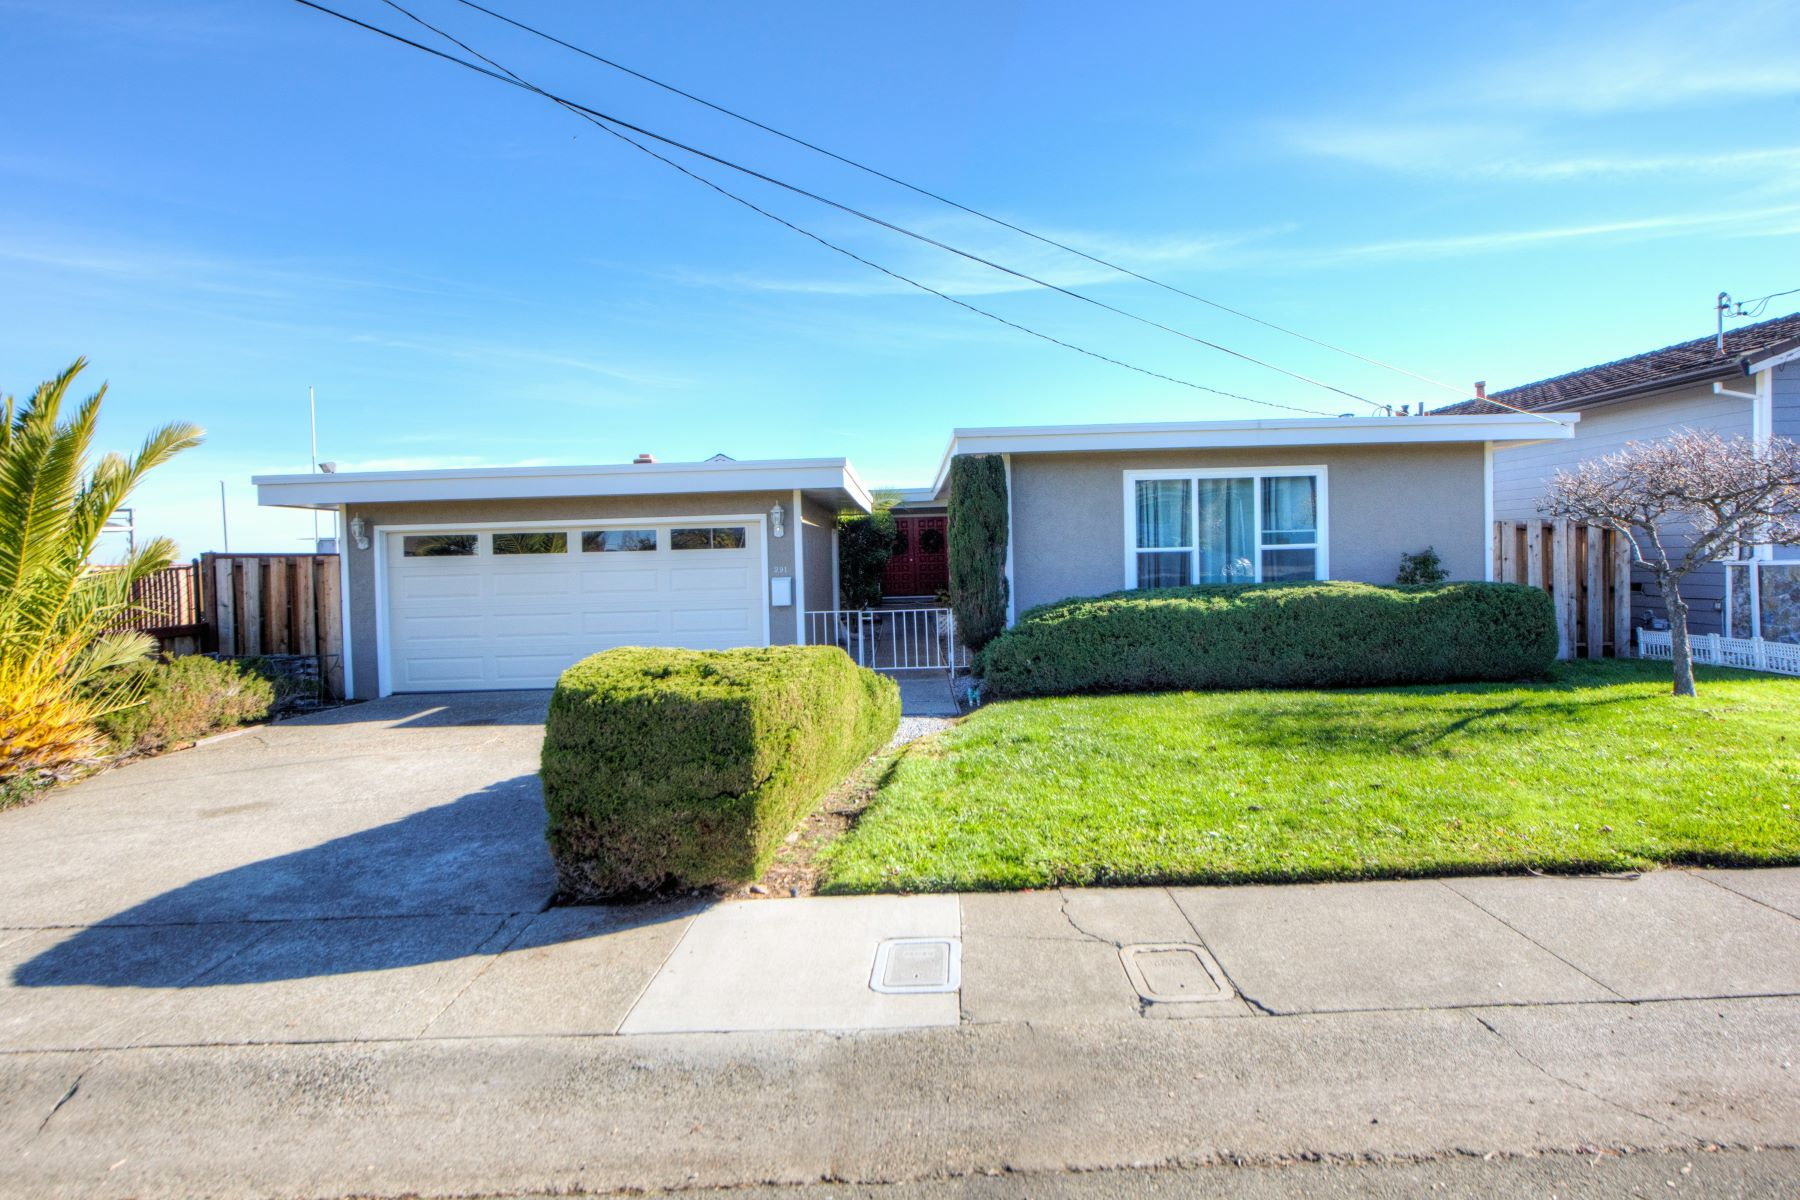 Single Family Home for Sale at Bayfront Living in Corte Madera 291 Golden Hind Passage Corte Madera, California 94925 United States